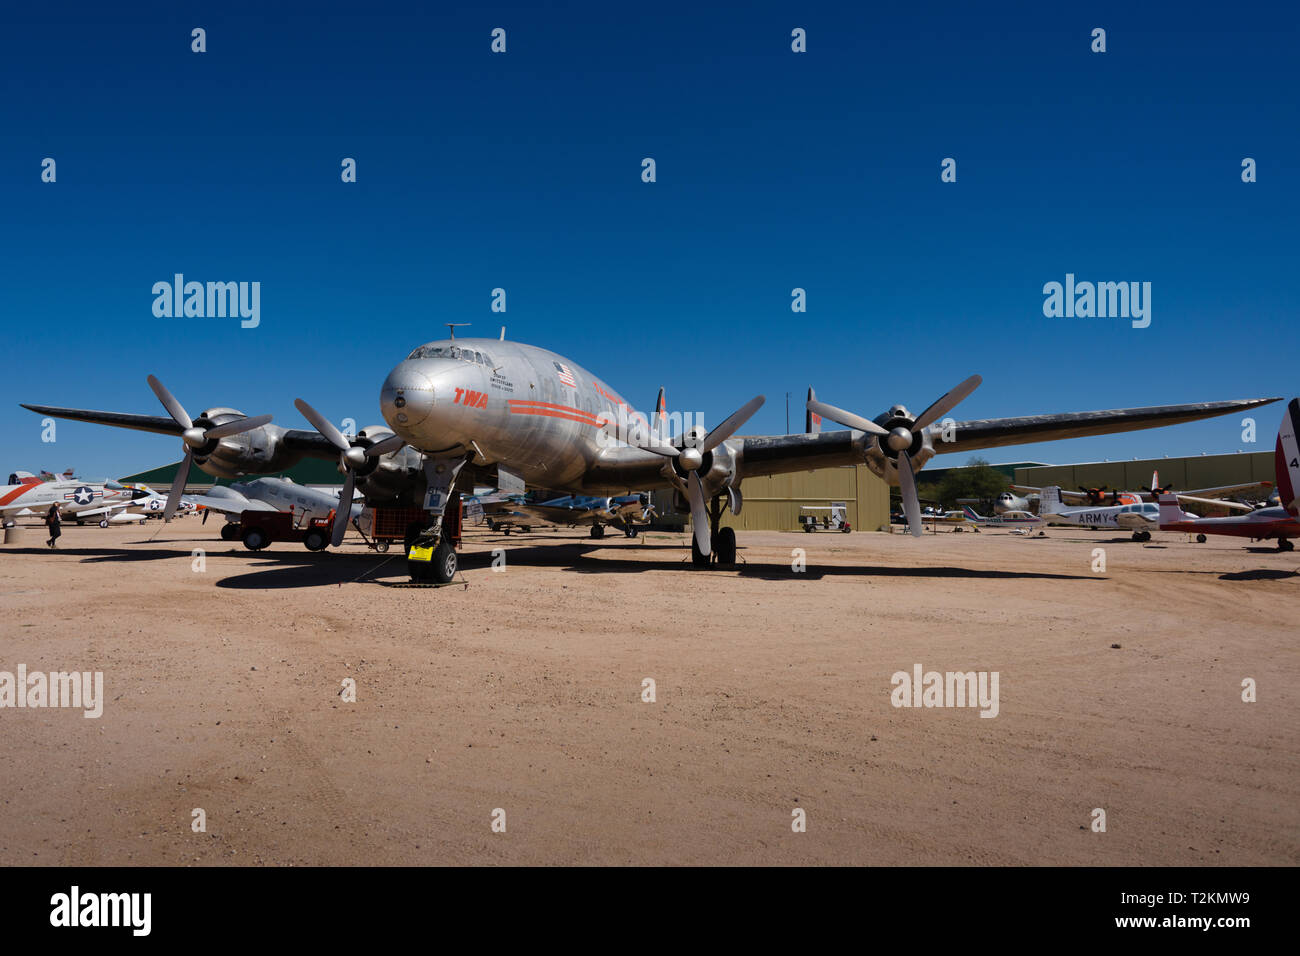 Lockheed L-049 Constellation - Stock Image